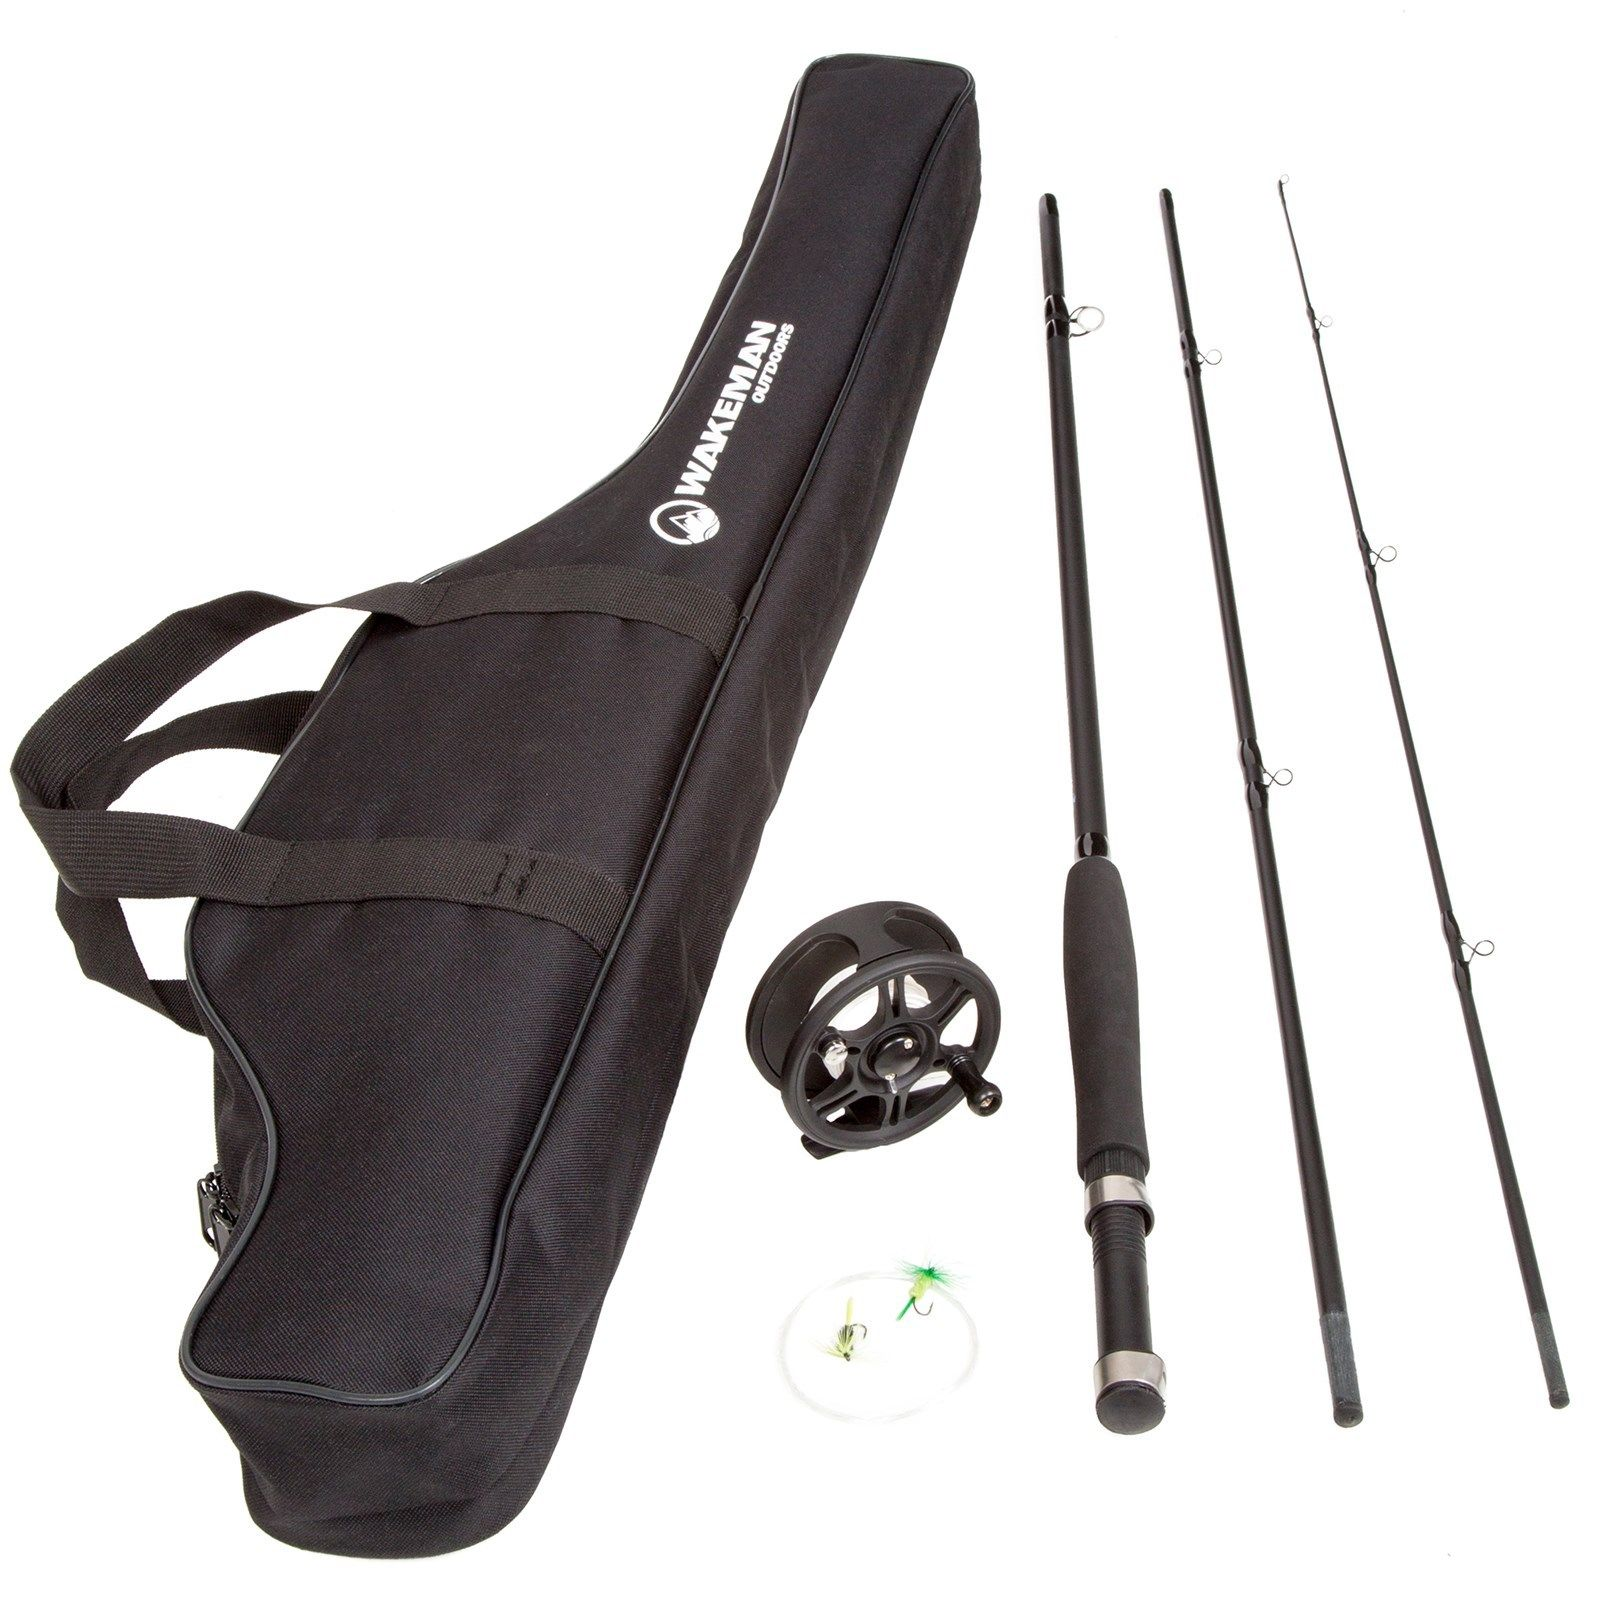 Wakeman 3 Piece 8 Feet Long Fly Rod and Reel with Carryin...